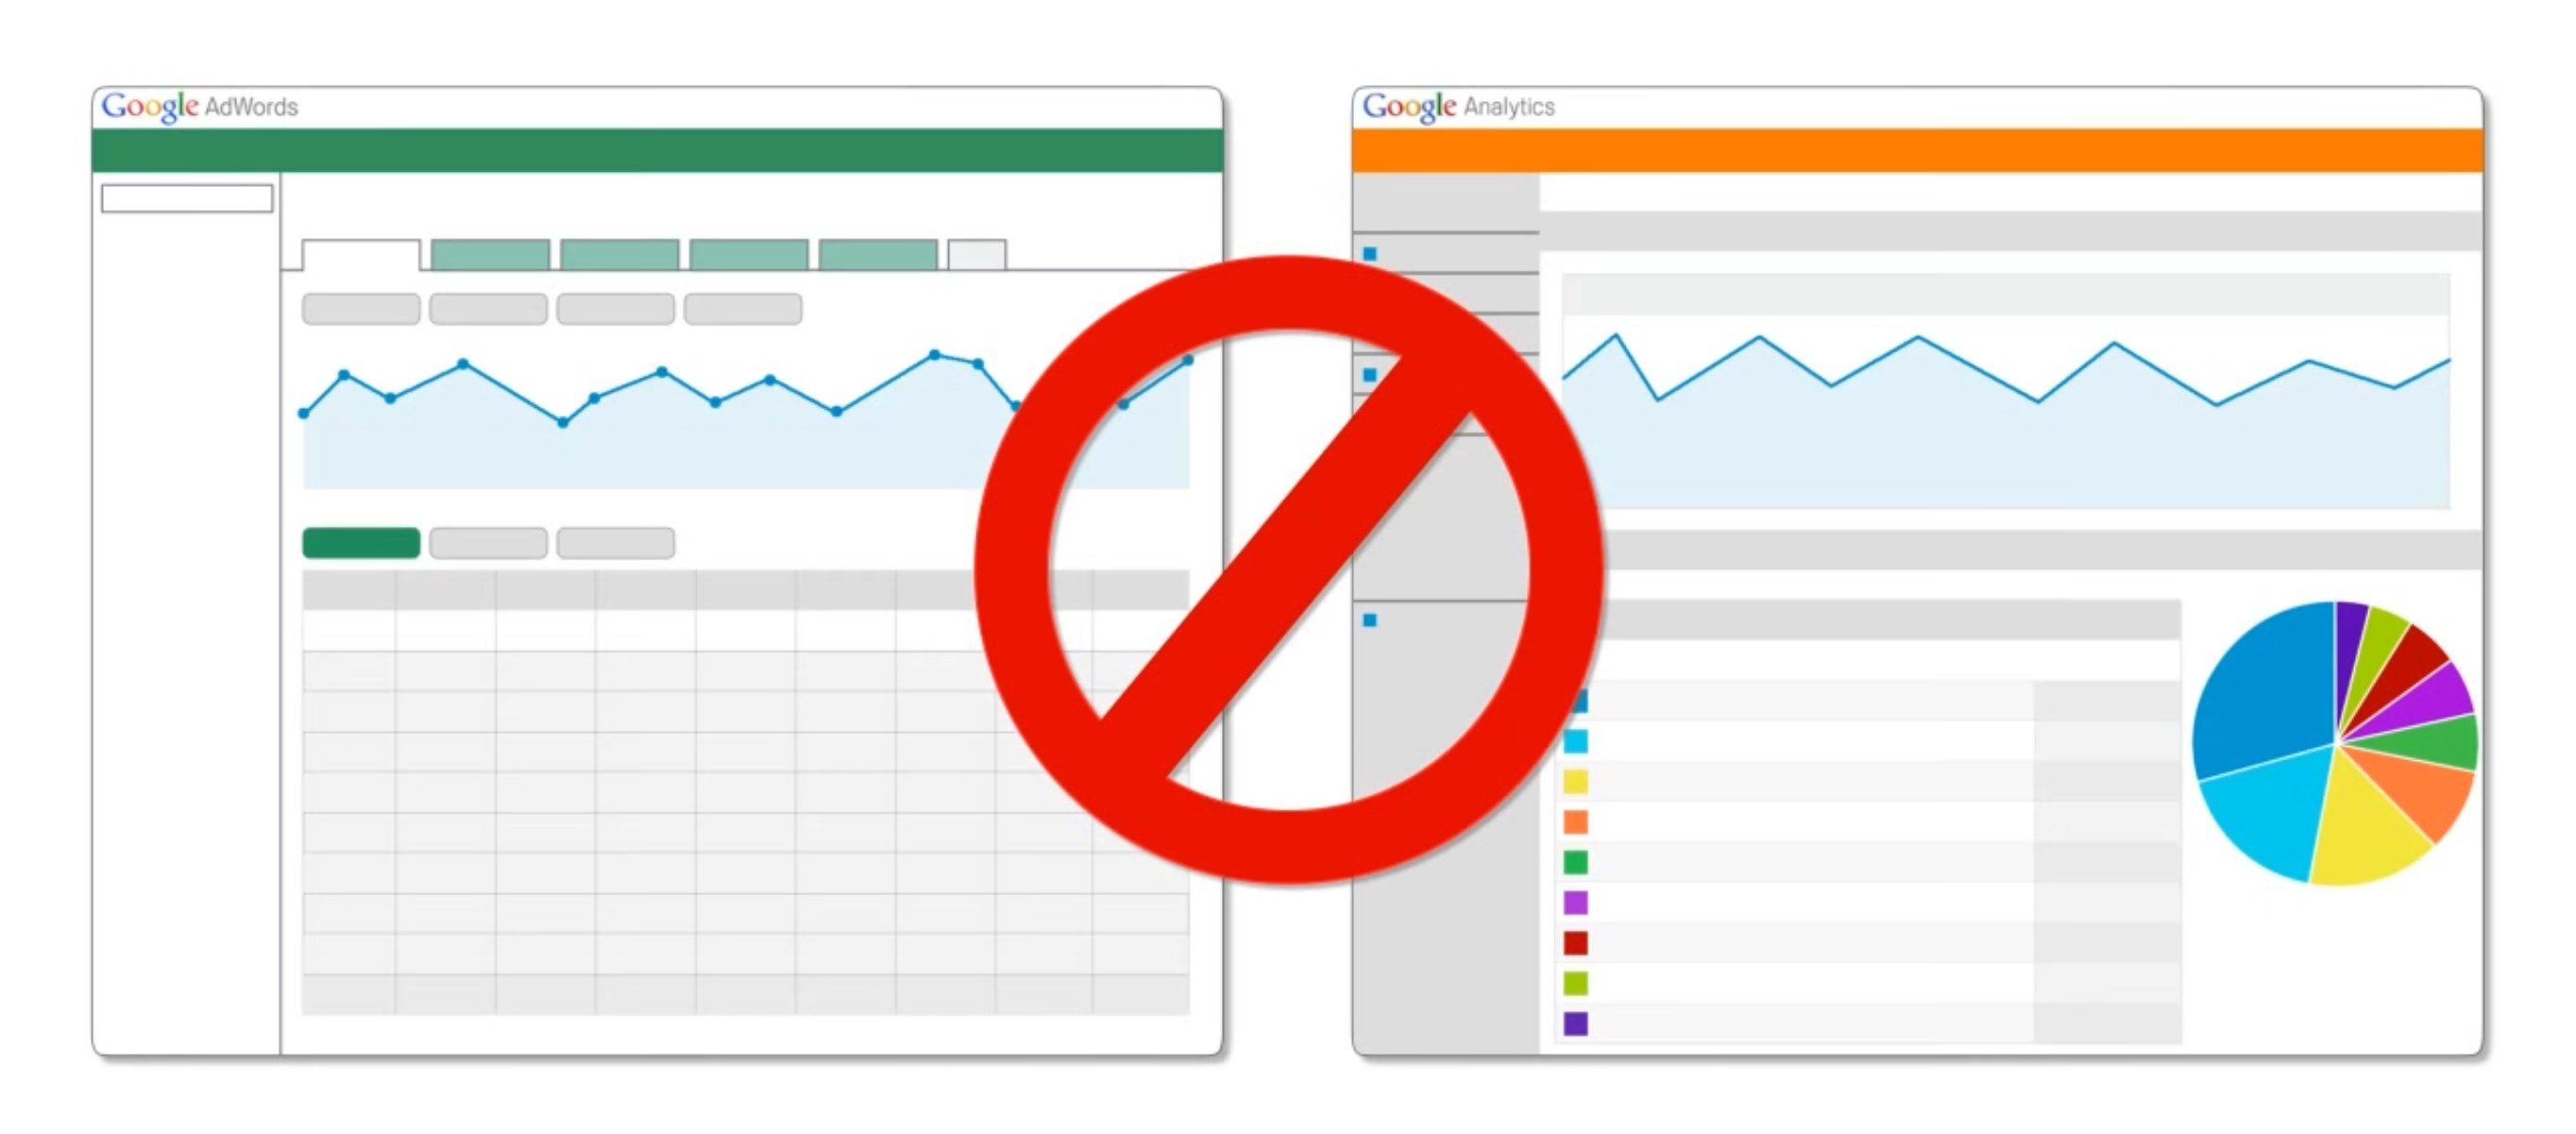 3 Essential facts and differences about conversions on Google Analytics and Google Adwords